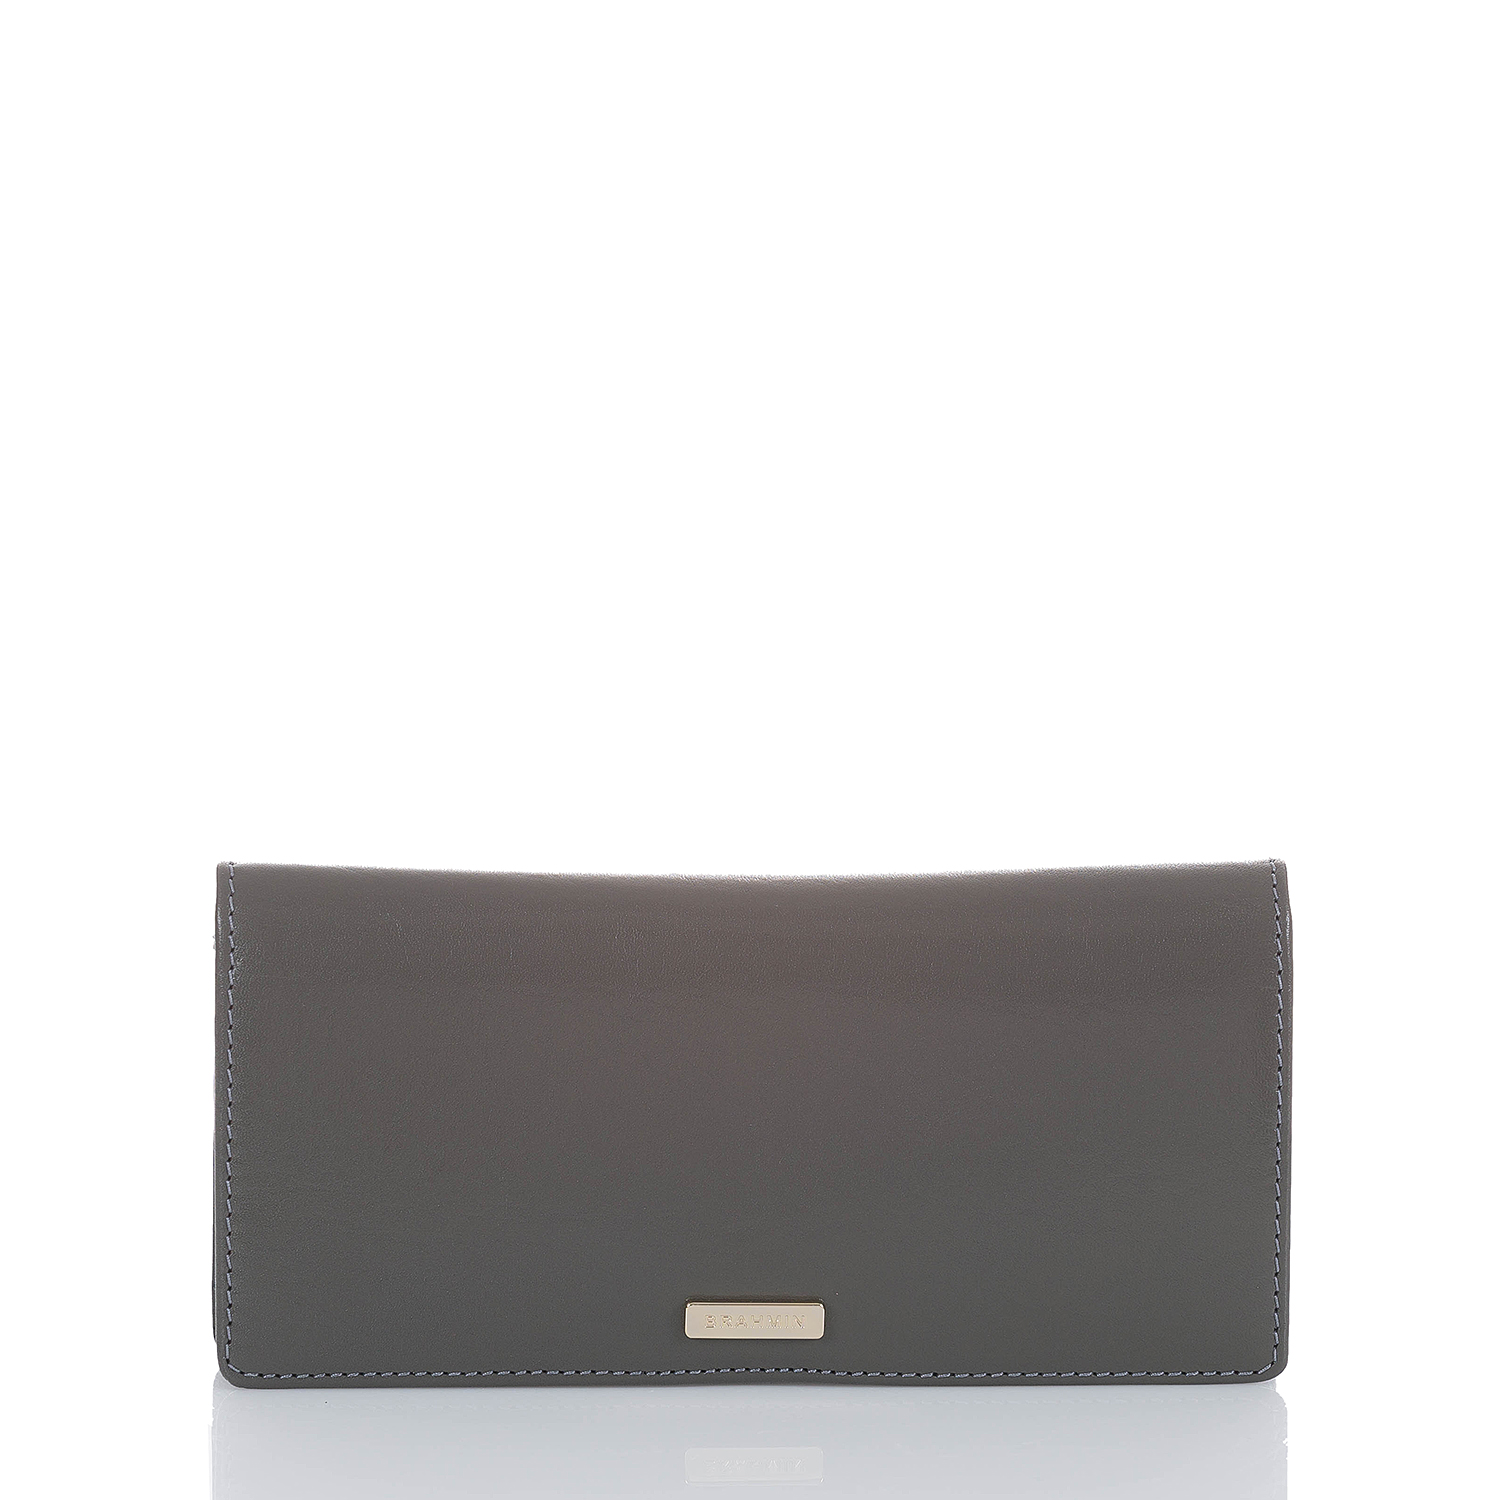 Ady Wallet Charcoal Topsail